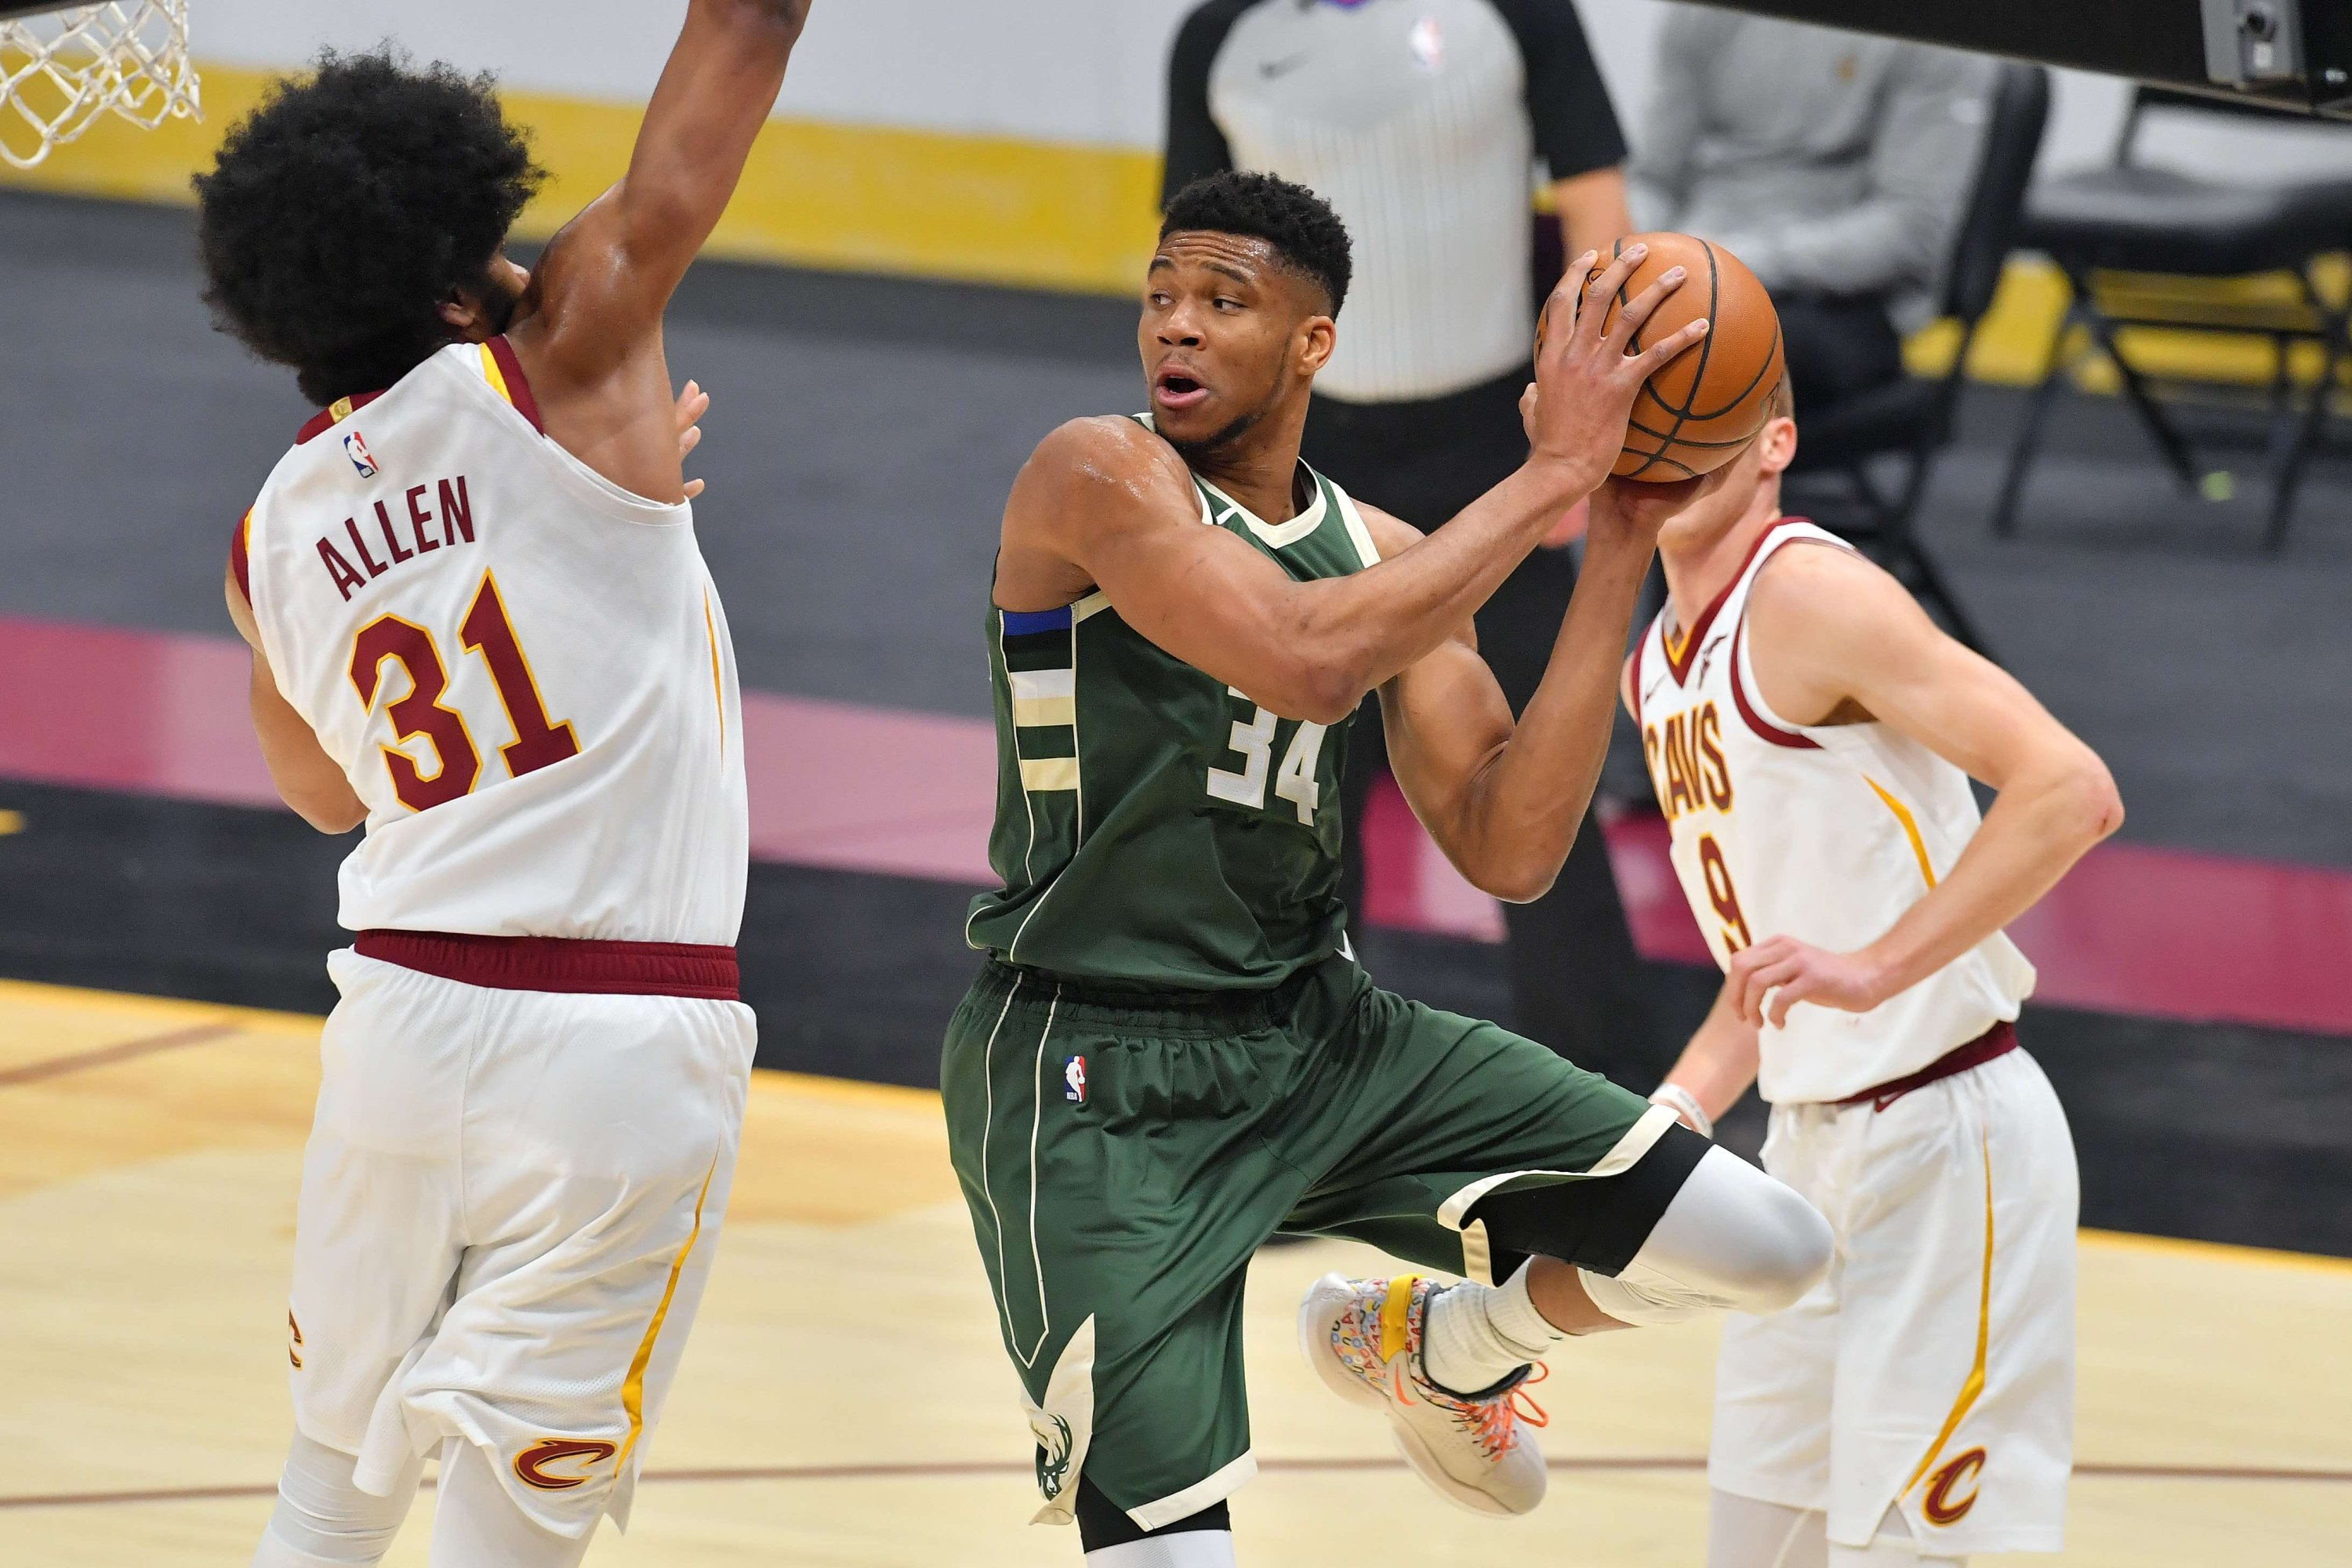 Giannis Antetokounmpo (C) of the Milwaukee Bucks looks for a pass against Cleveland Cavaliers Jarrett Allen (L) during an NBA match at Rocket Mortgage Fieldhouse, Cleveland, Ohio, U.S, Feb. 6, 2021. (AFP Photo)